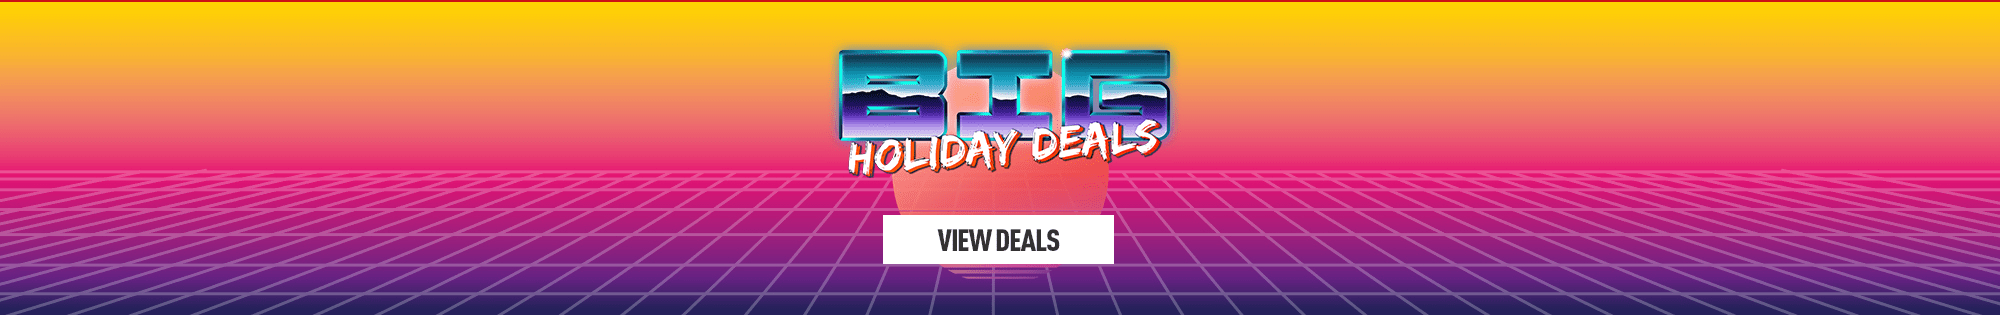 Big Bank Holiday Deals for PlayStation 4, Xbox One and PC - Homepage Banner